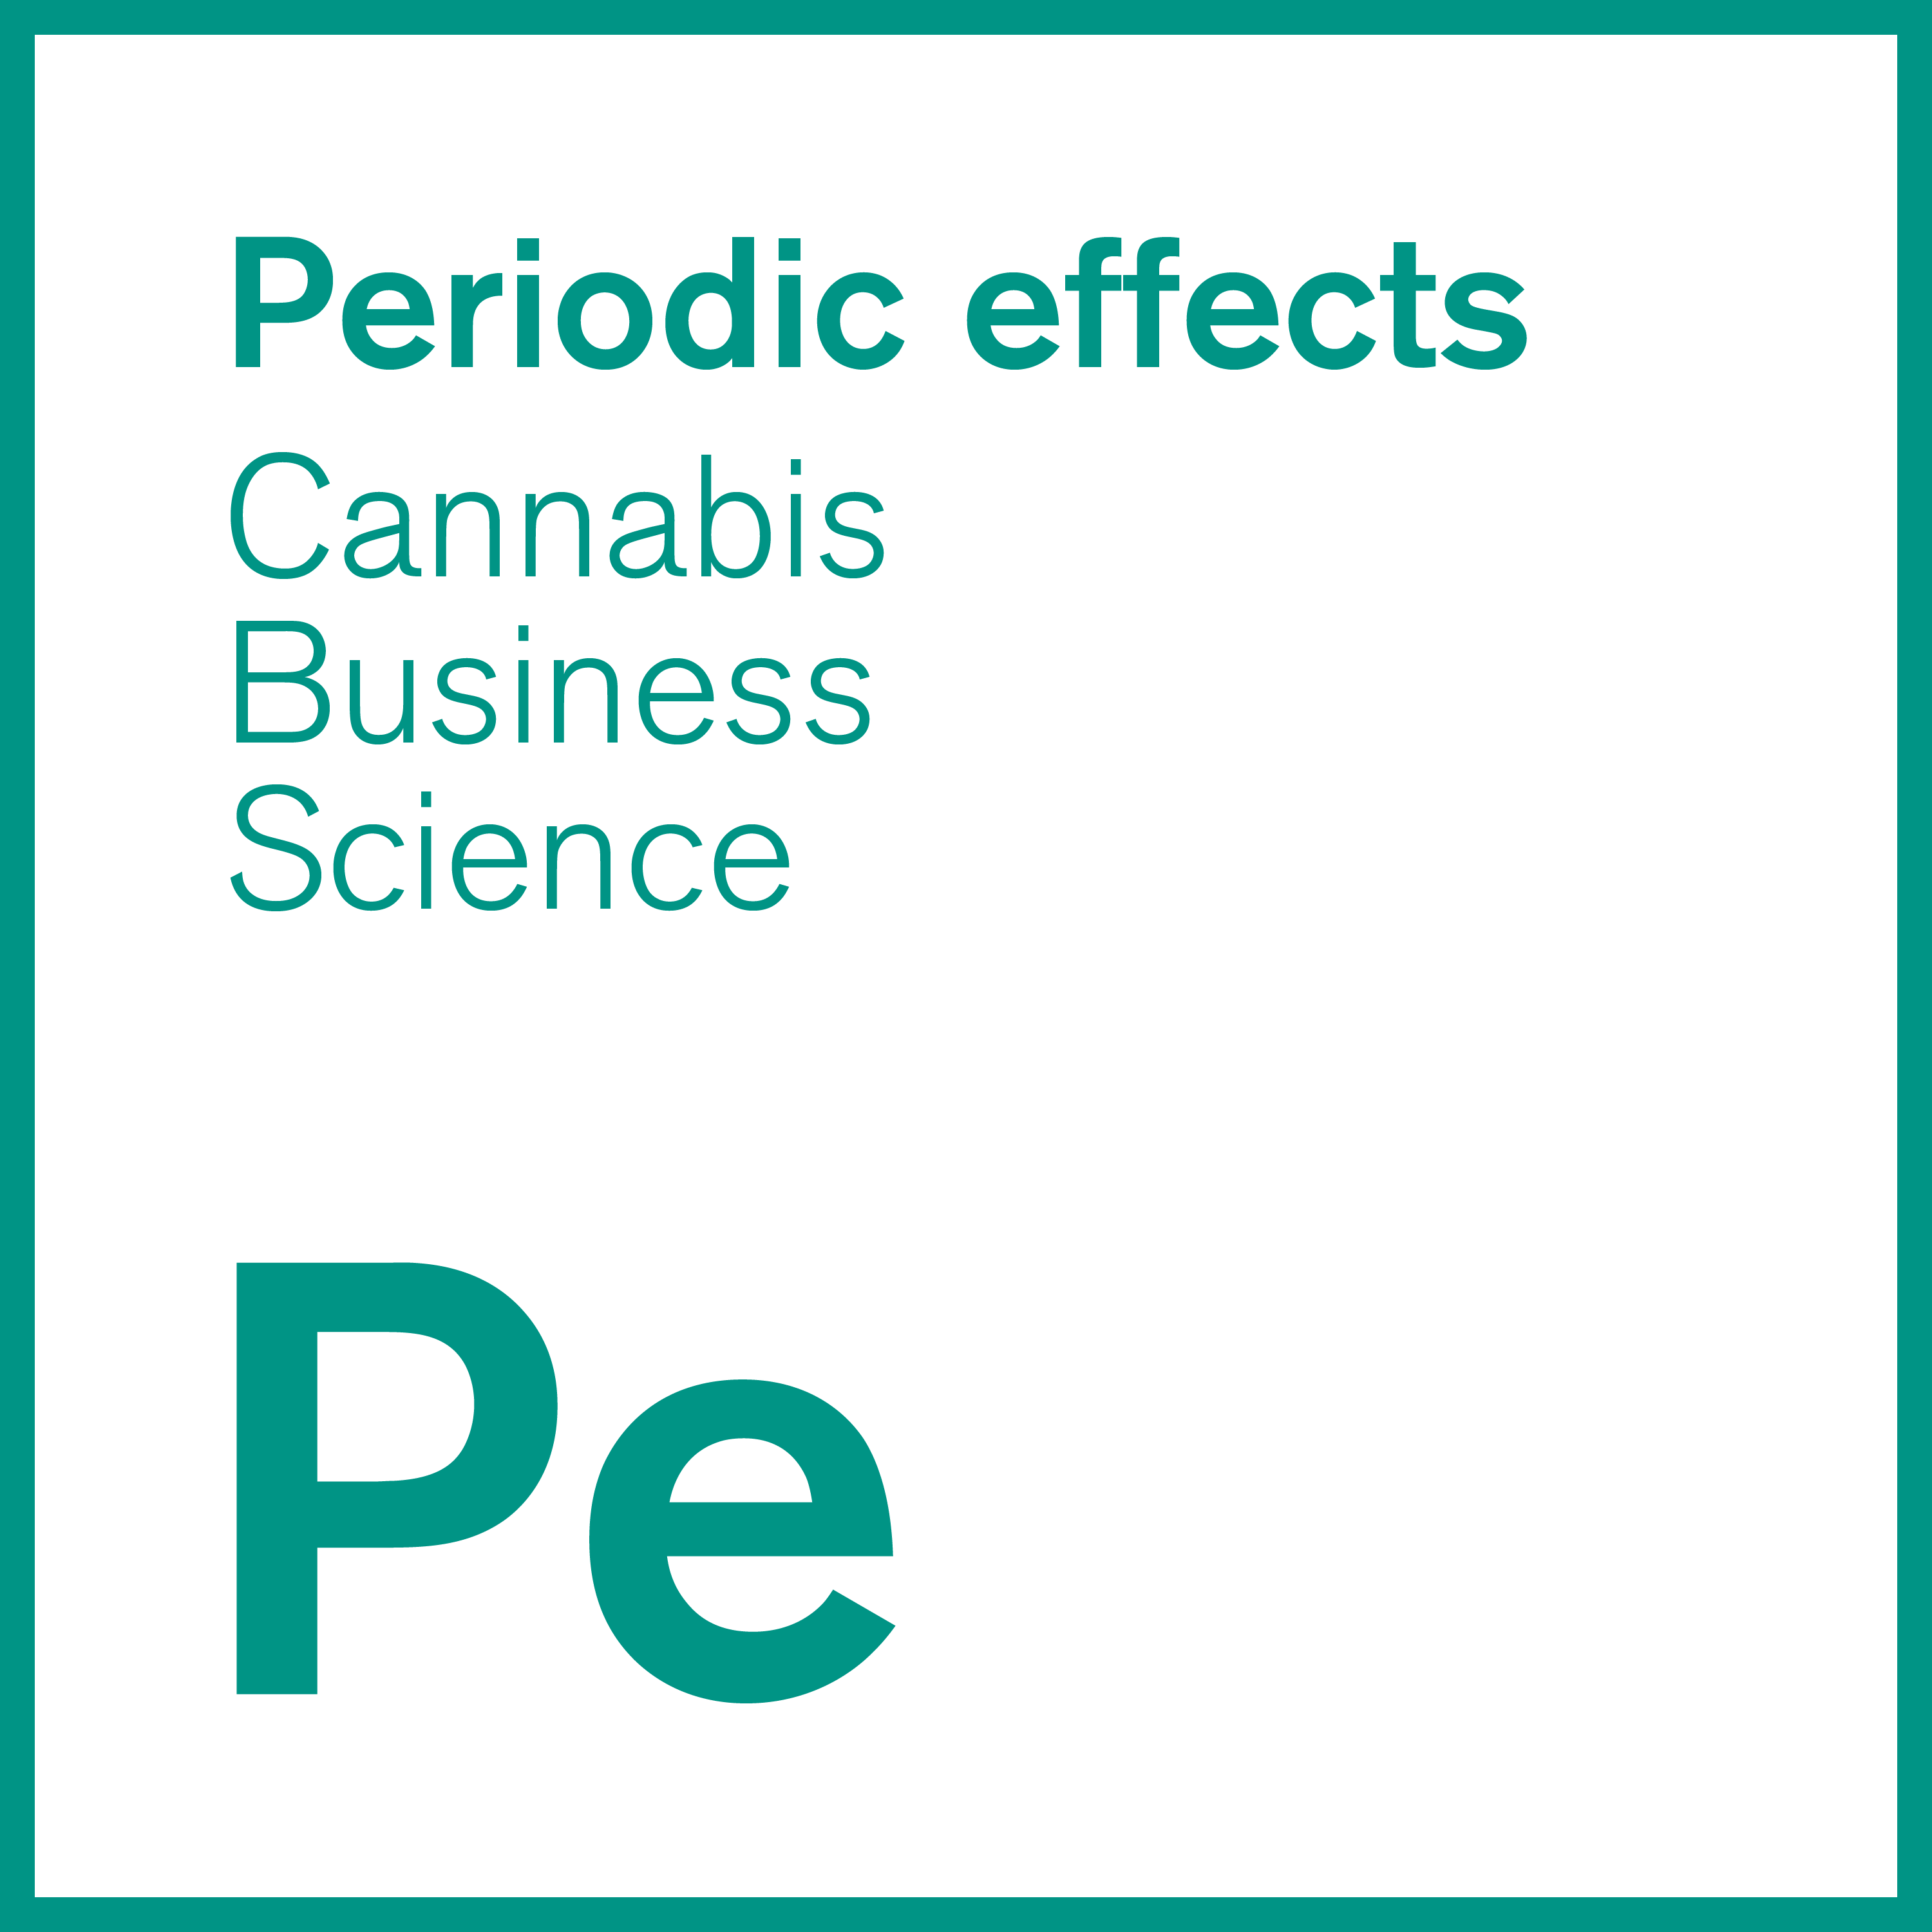 periodic effects podcast